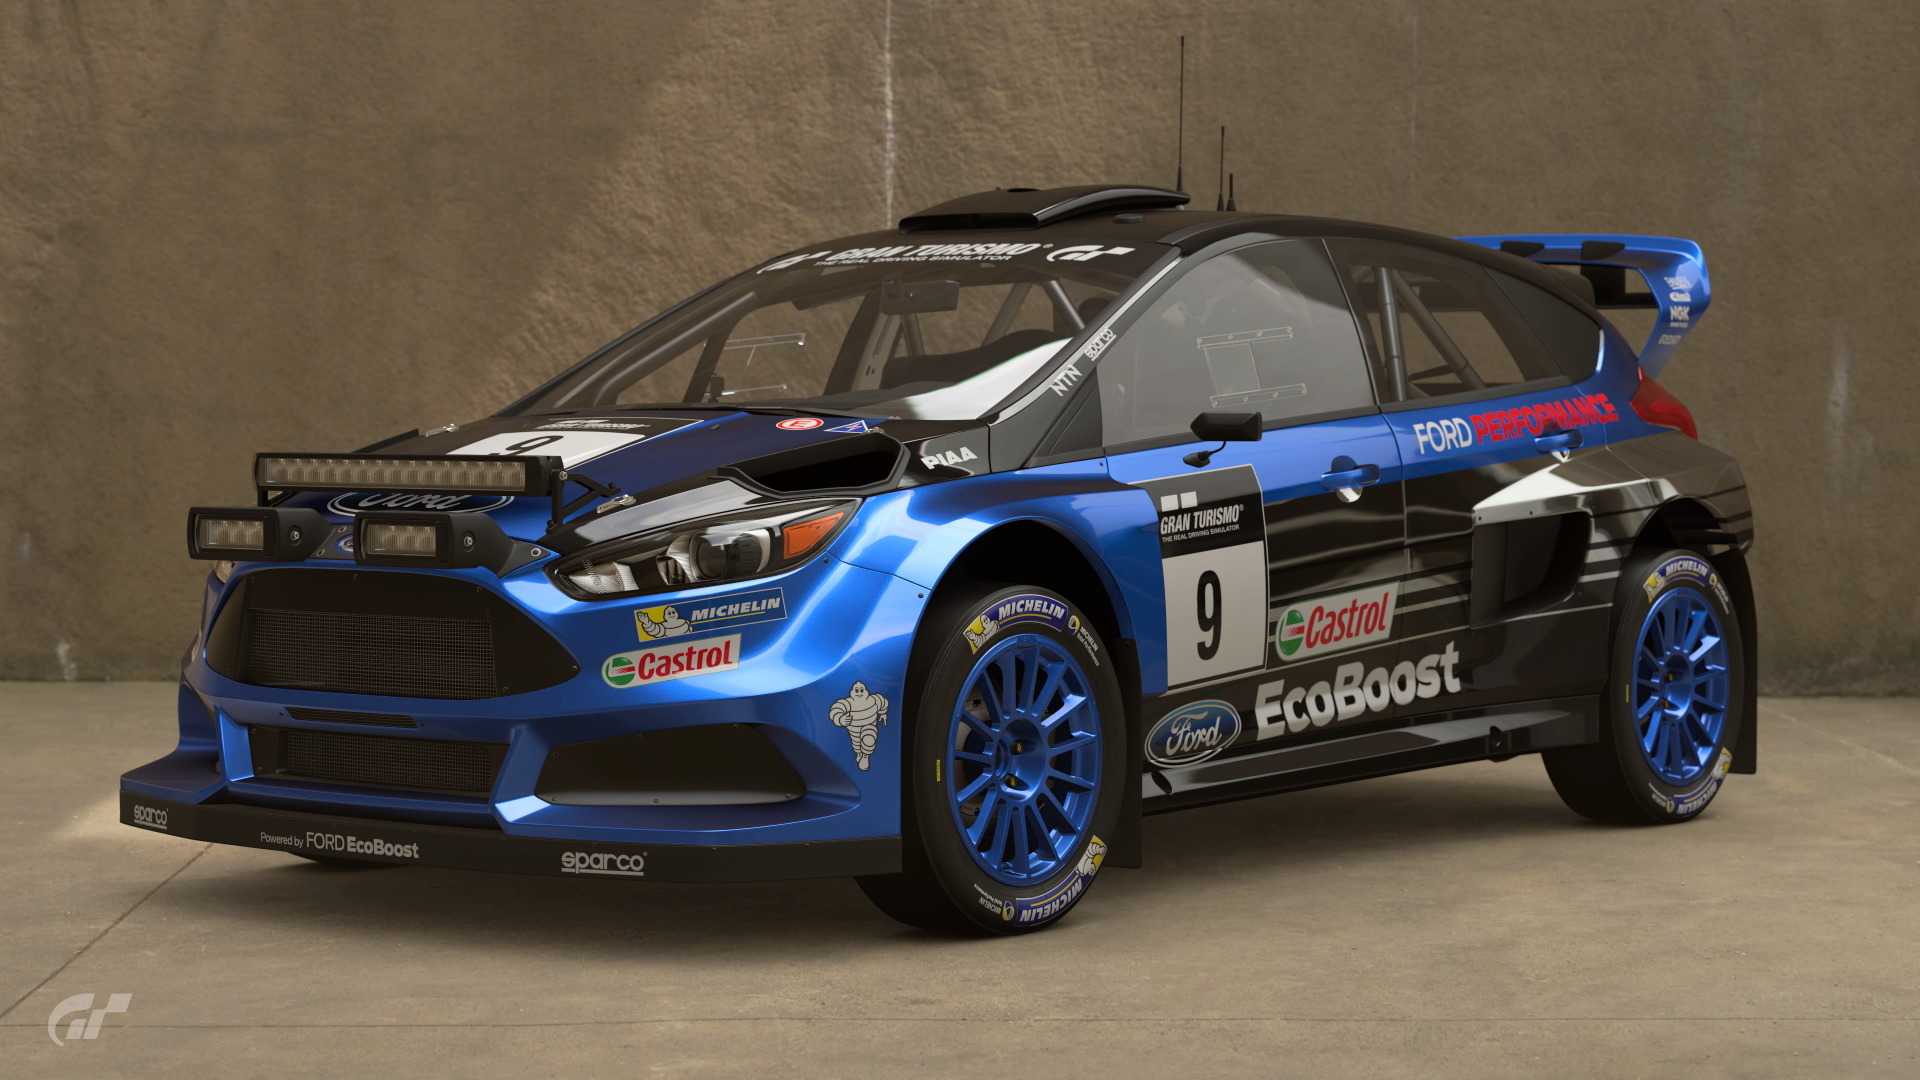 Ford Focus Gr.B Rally Car.jpg & Image - Ford Focus Gr.B Rally Car.jpg | Gran Turismo Wiki | FANDOM ... markmcfarlin.com